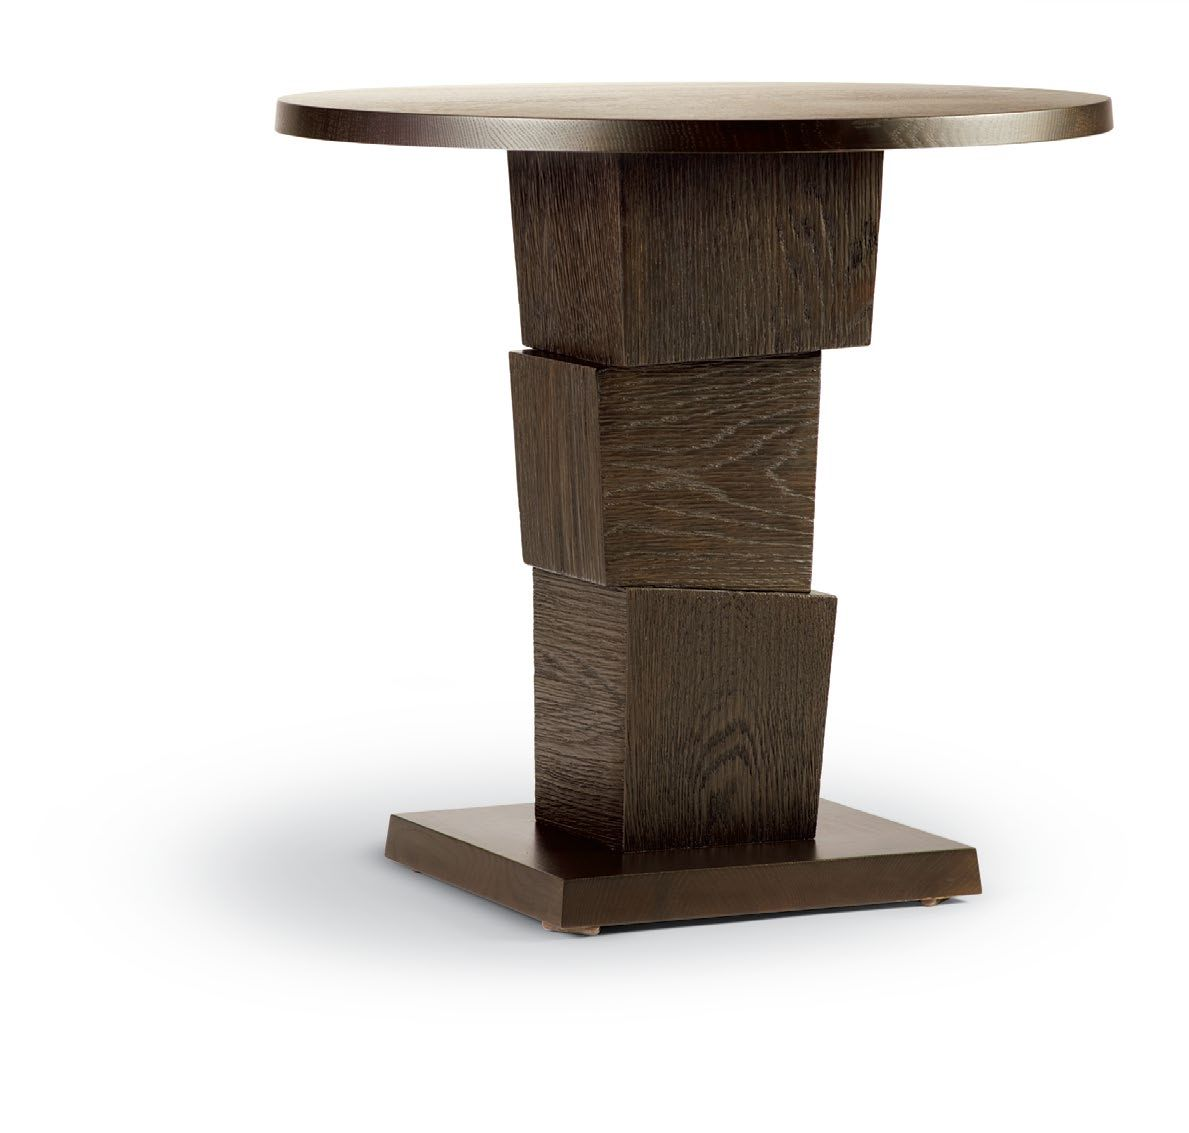 block end table furniture side small single wood accent with three sawn blocks solid top and base optional painted finish available various sizes finishes dining room lighting